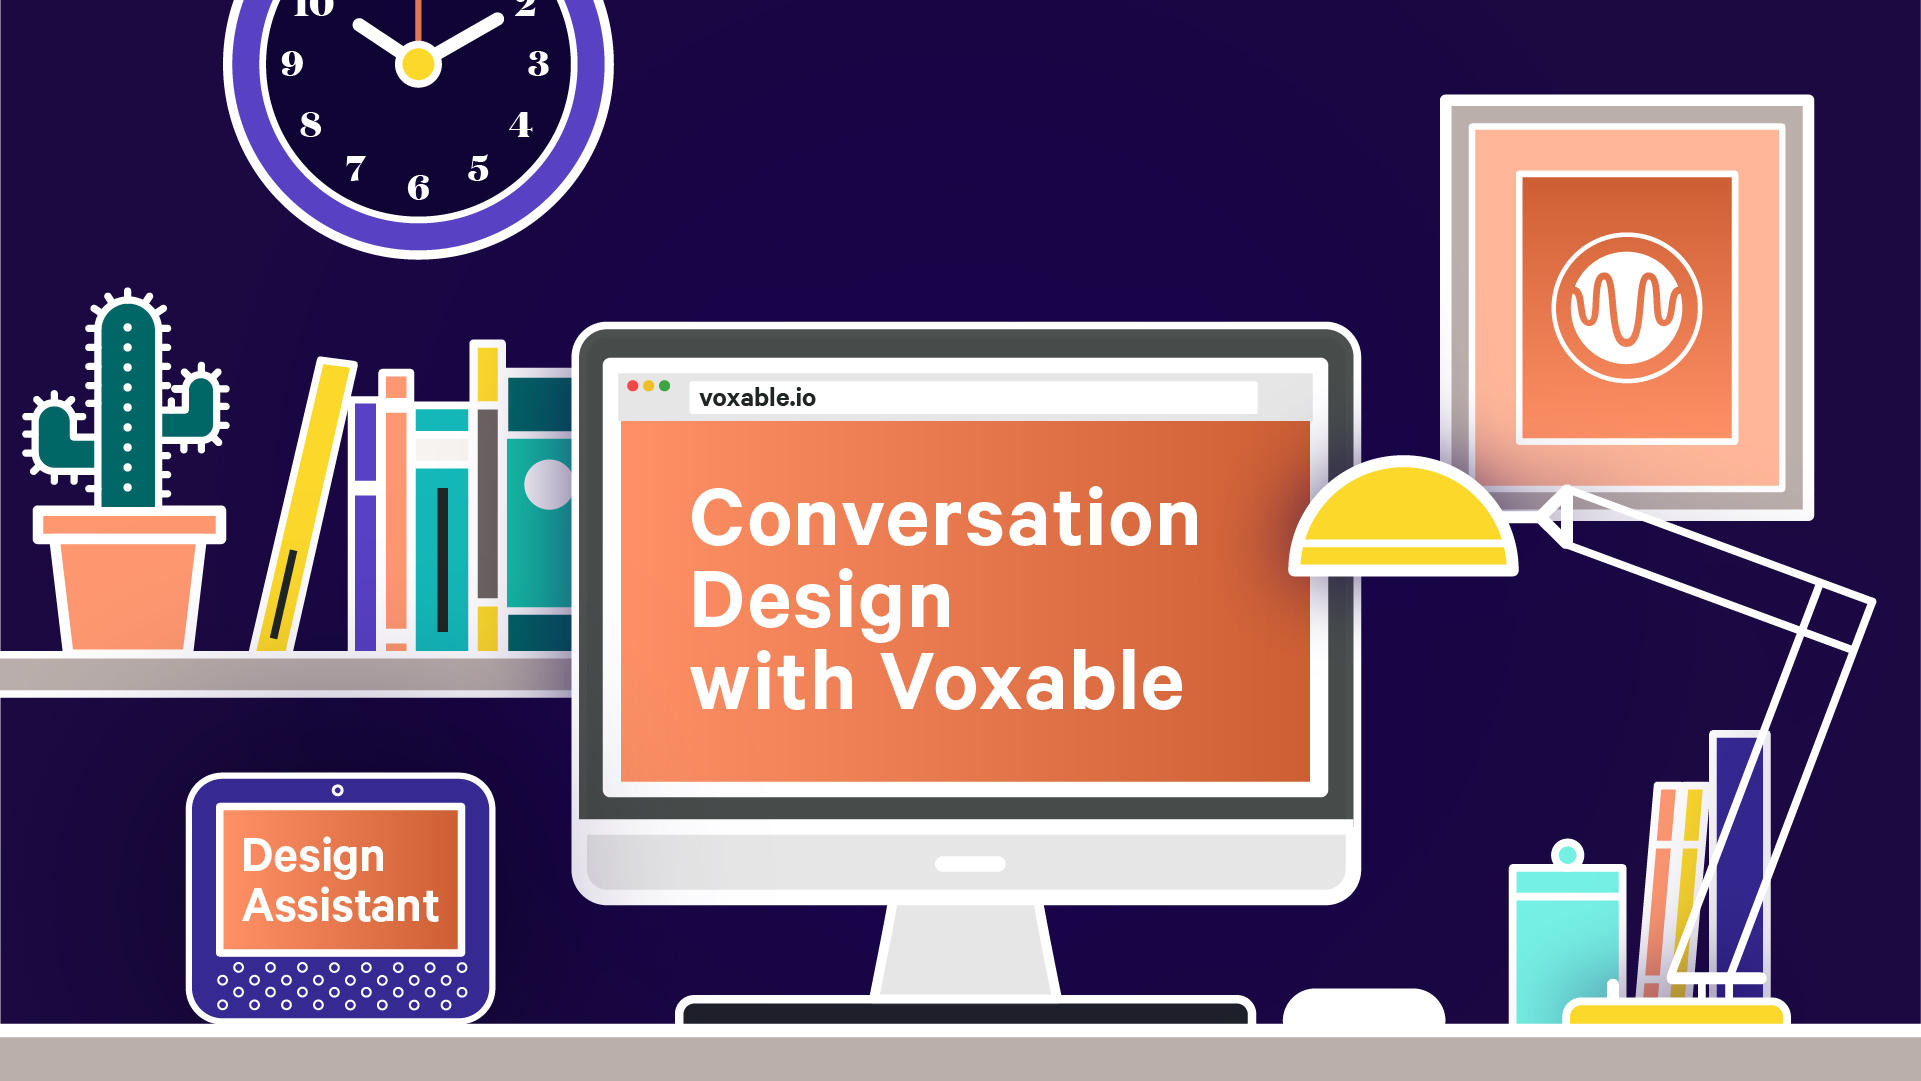 """An illustration of a desk with a computer and smart speaker. The computer displays the text """"Conversation Design with Voxable"""" and the smartspeaker displays the text """"Chat Preview.""""."""""""